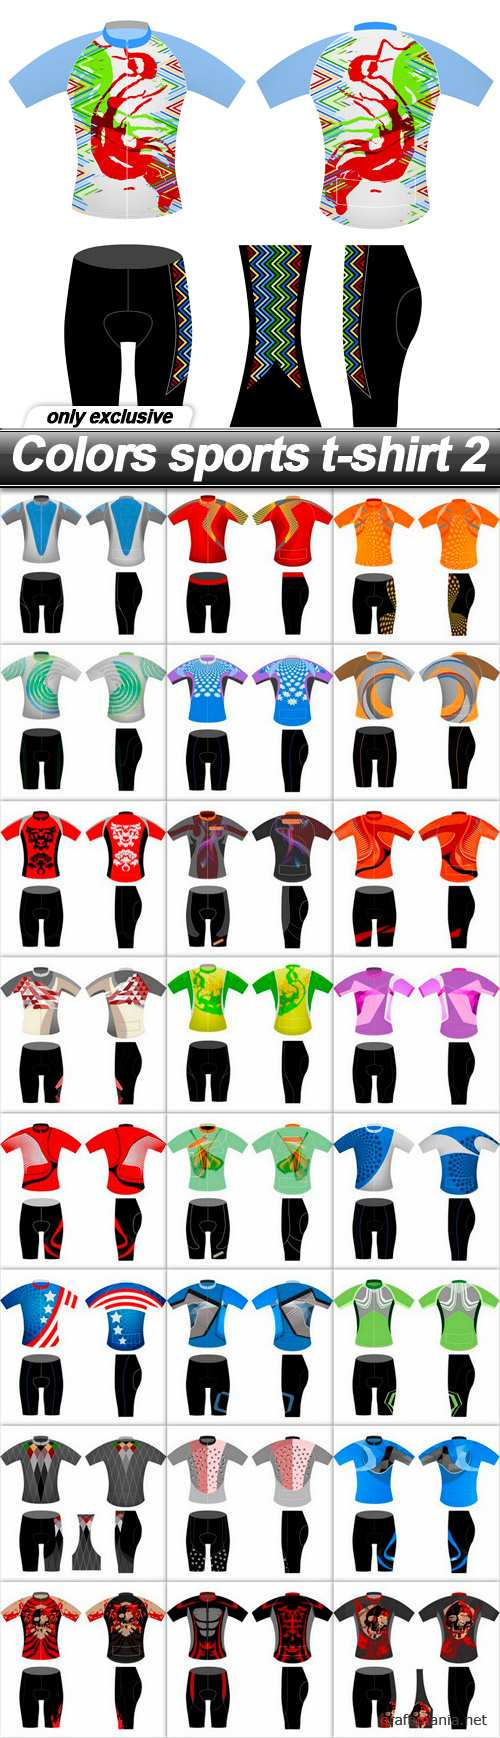 Colors sports t-shirt 2 - 25 EPS